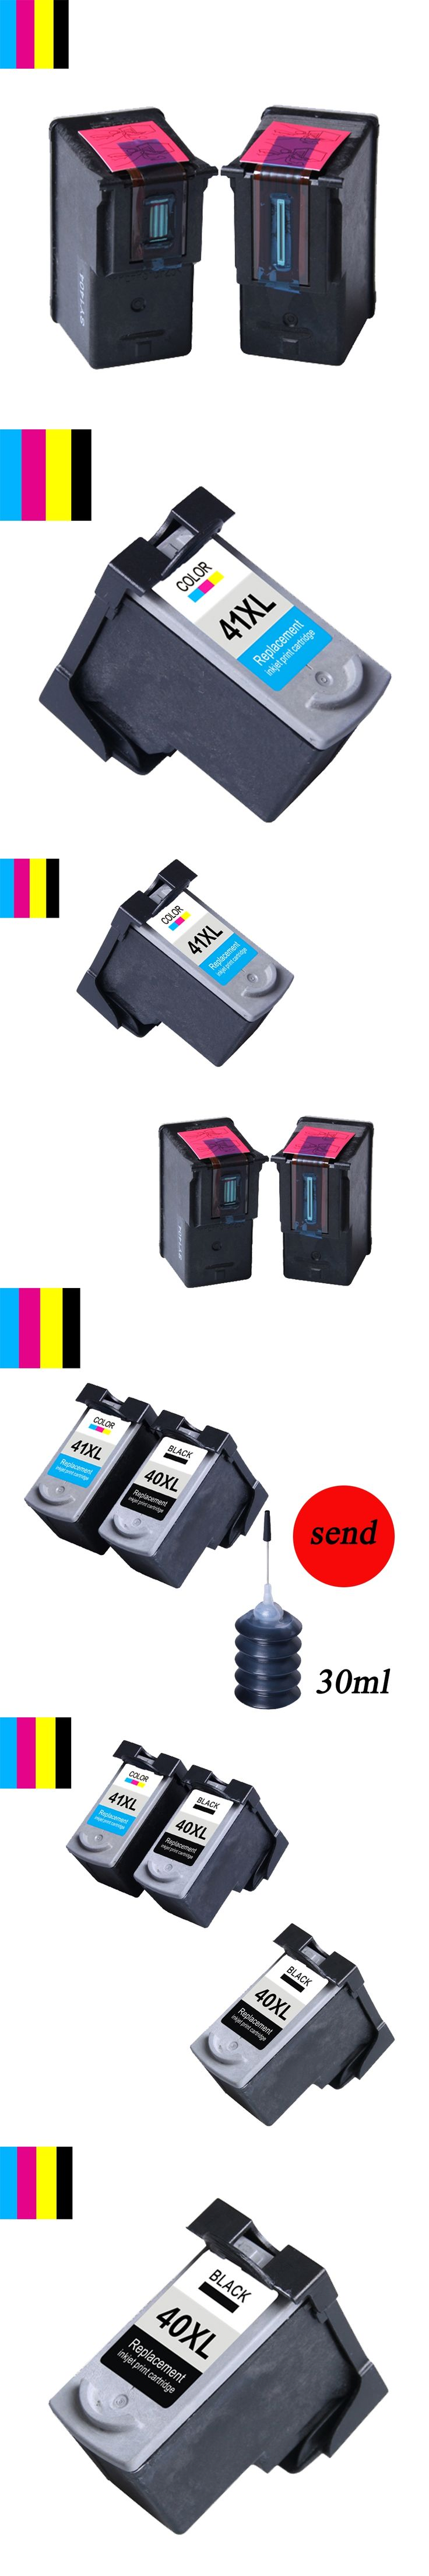 Hot PG40 CL41 Compatible Ink Cartridge for Canon PG 40 CL 41 PIXMA iP1600 iP1200 iP1900 MX300 MX310 MP160 MP140 MP150 send +30ml